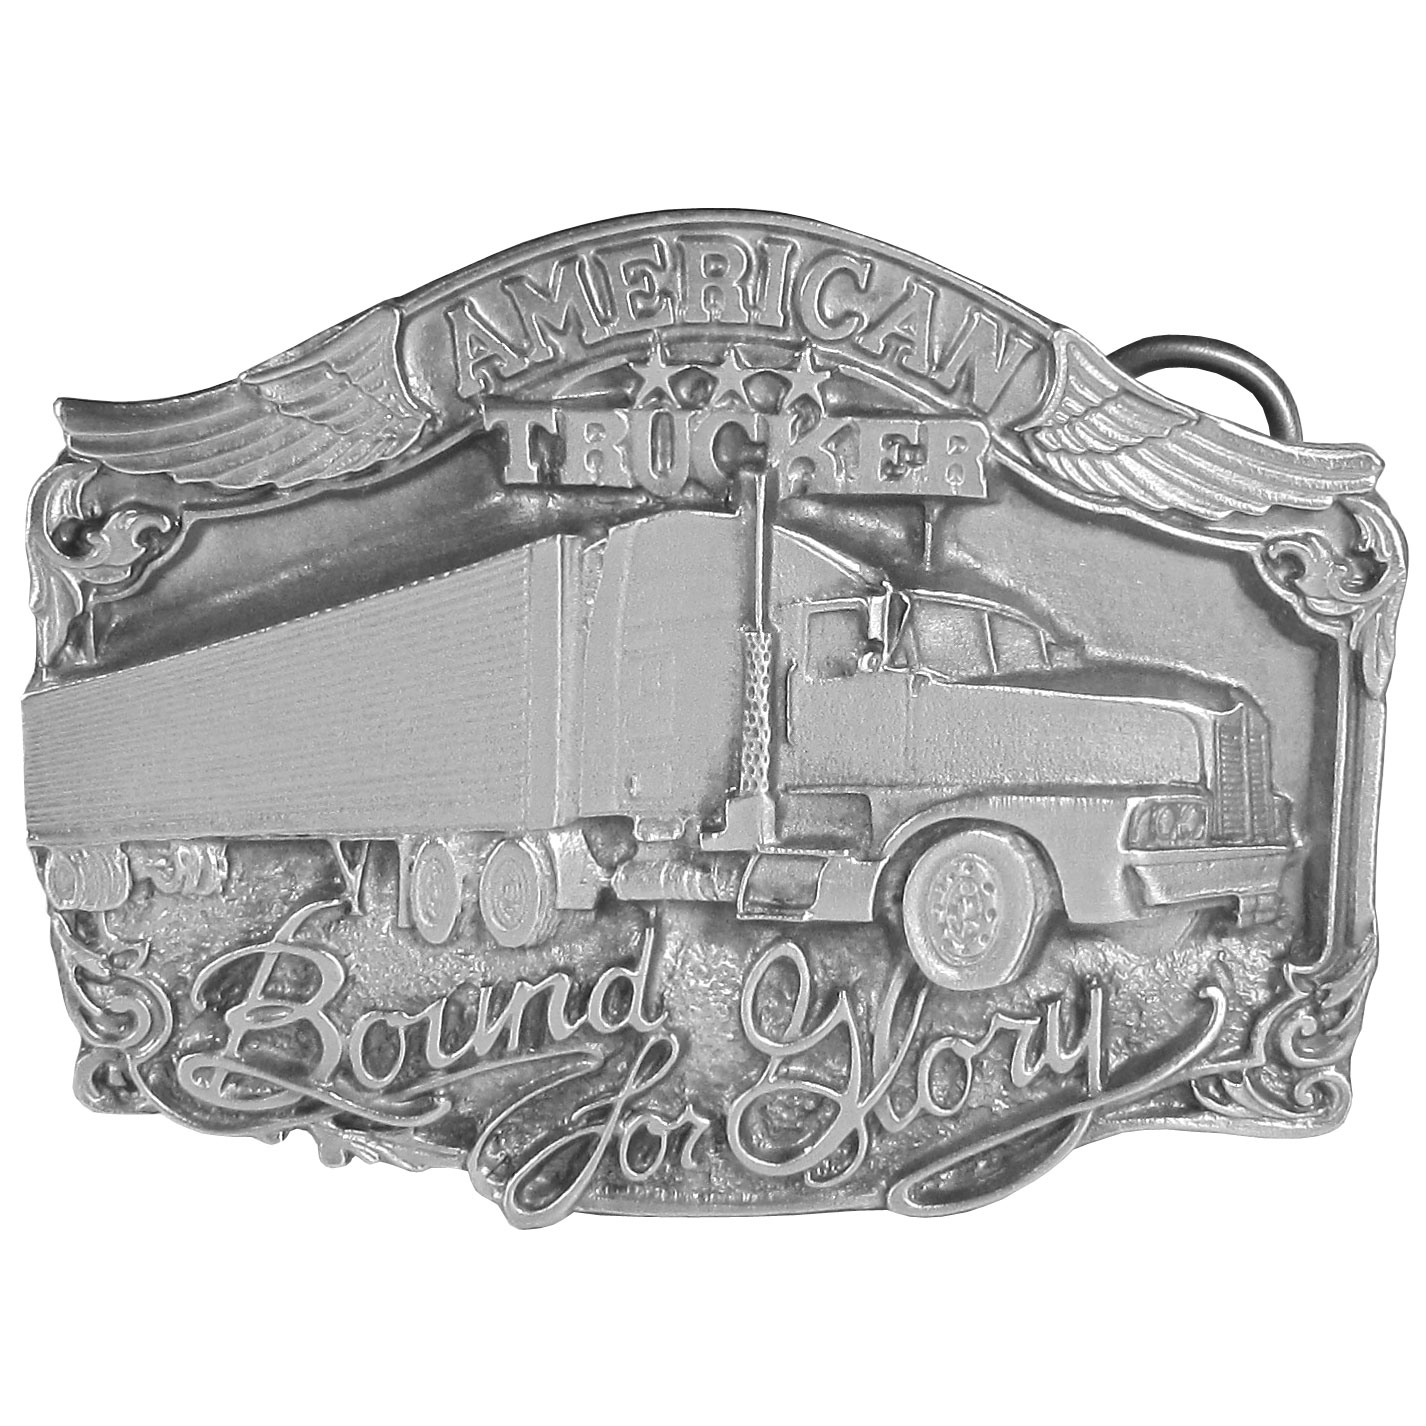 "American Trucker Antiqued Belt Buckle - This belt buckle celebrates the trucker. In bold are the words, ""American Trucker Bound for Glory"" with a semi truck in the center. On the back it says, The American Trucker… a 20th century cowboy, keeping America moving. This exquisitely carved buckle is made of fully cast metal with a standard bale that fits up to 2"" belts."